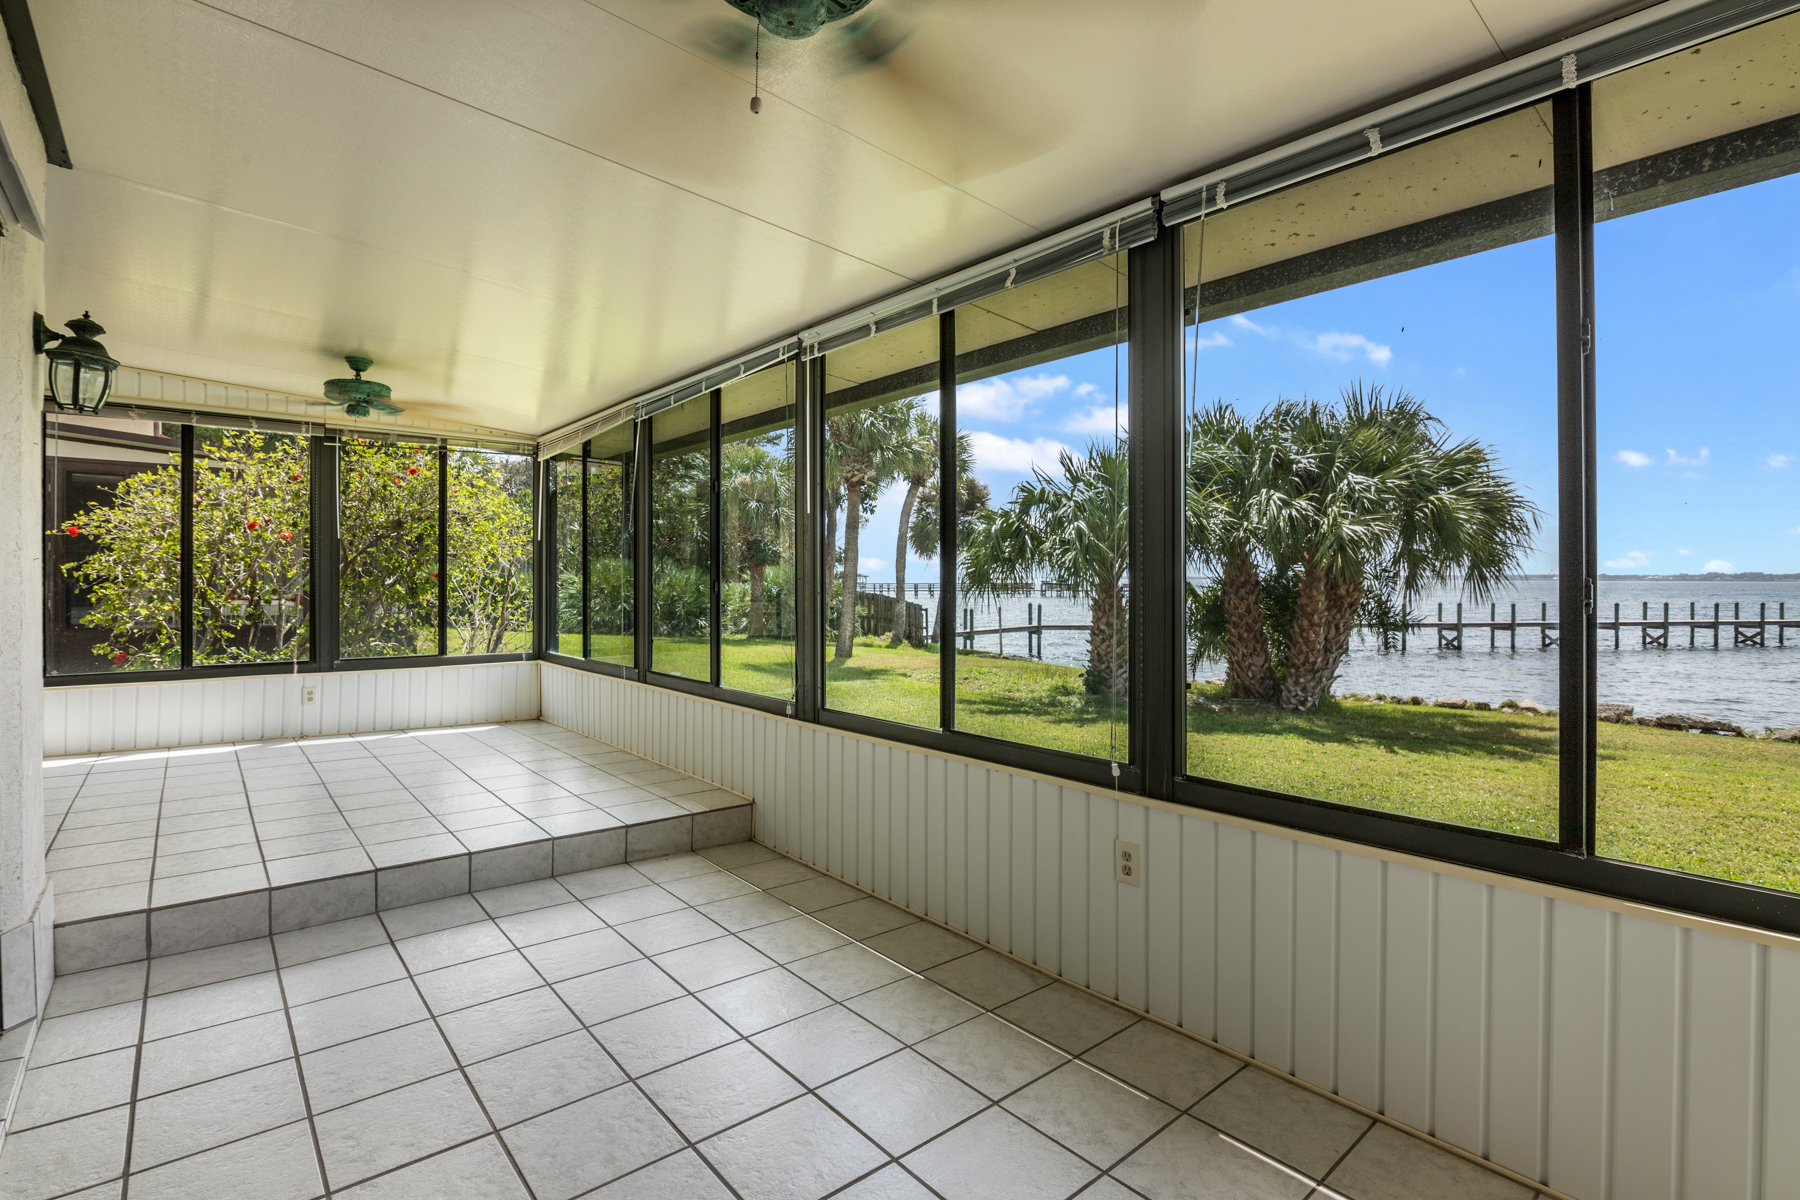 Additional photo for property listing at MELBOURNE BEACH RIVERFRONT TOWNHOUSE AWAITS YOU! 3262 River Villa Way Melbourne Beach, Florida 32951 United States